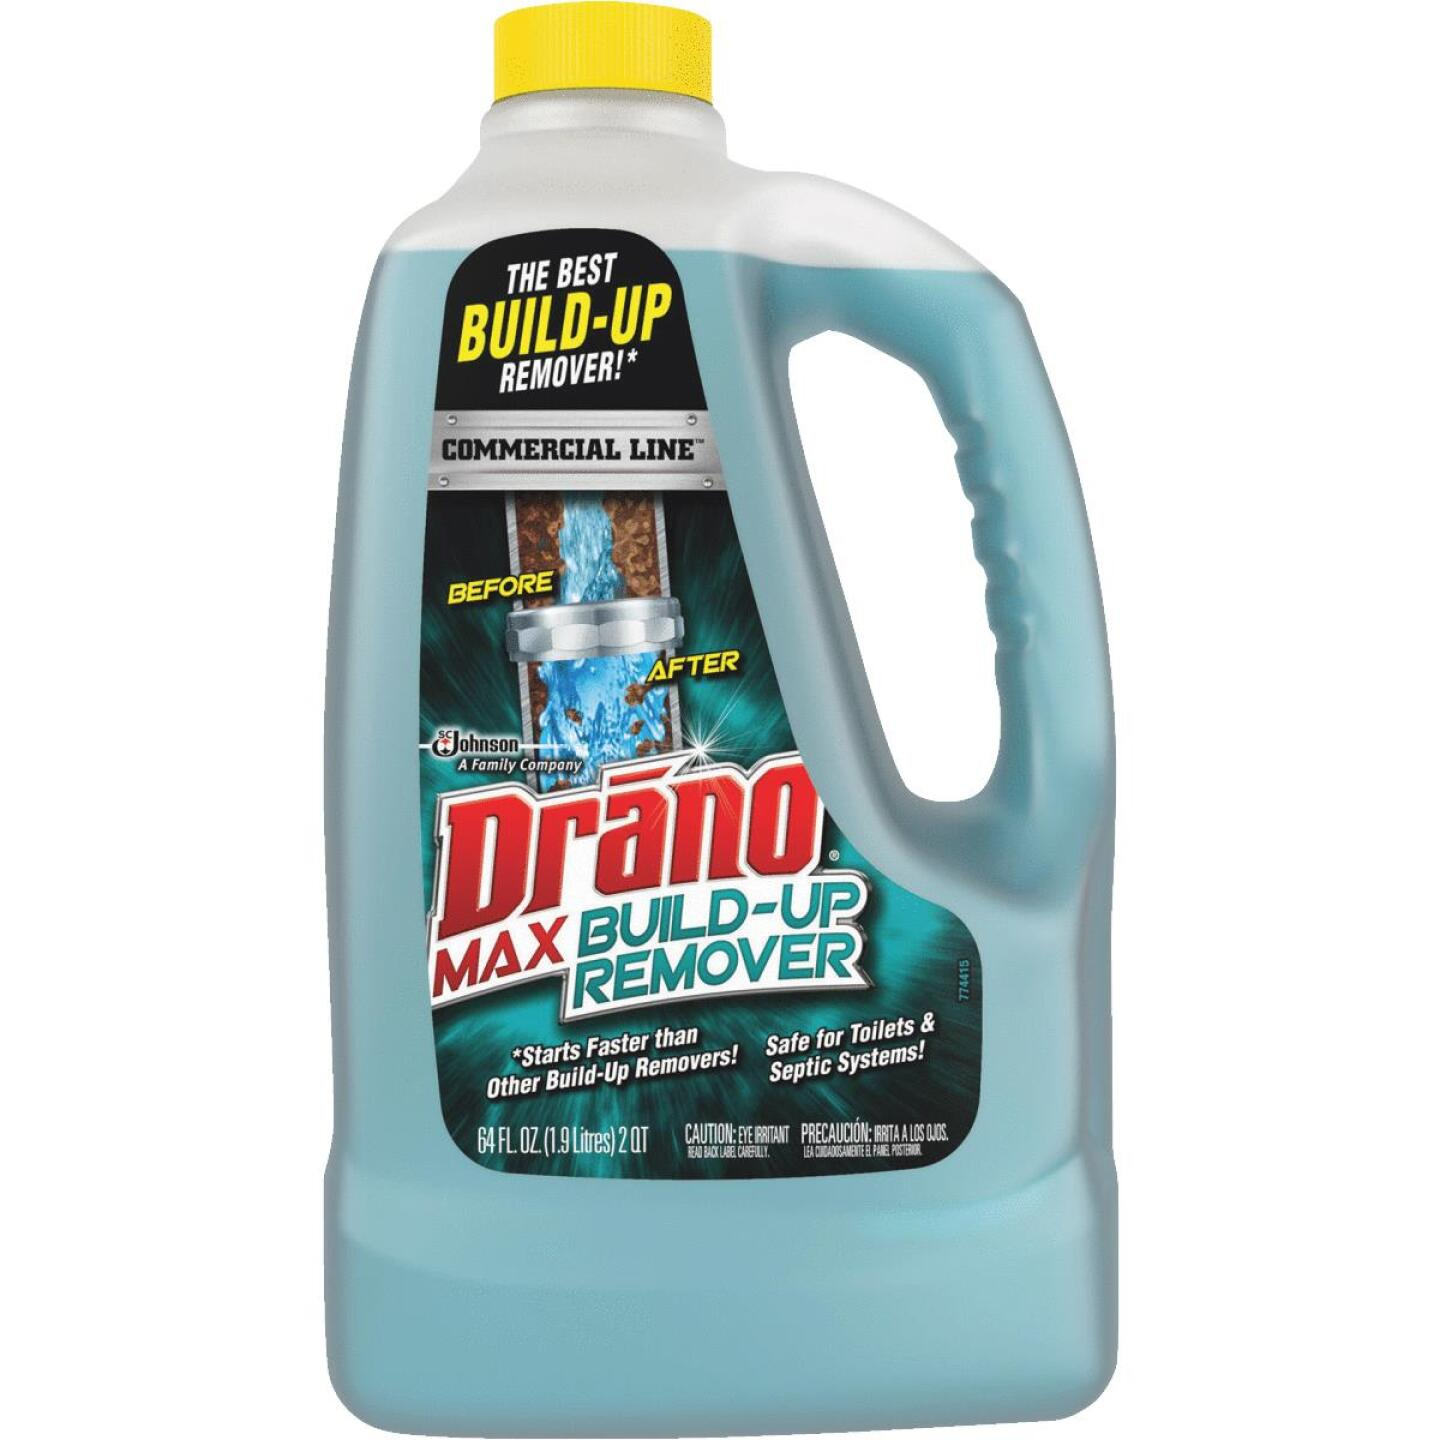 Drano Max 64 Oz. Commercial Line Build Up Remover  Image 1